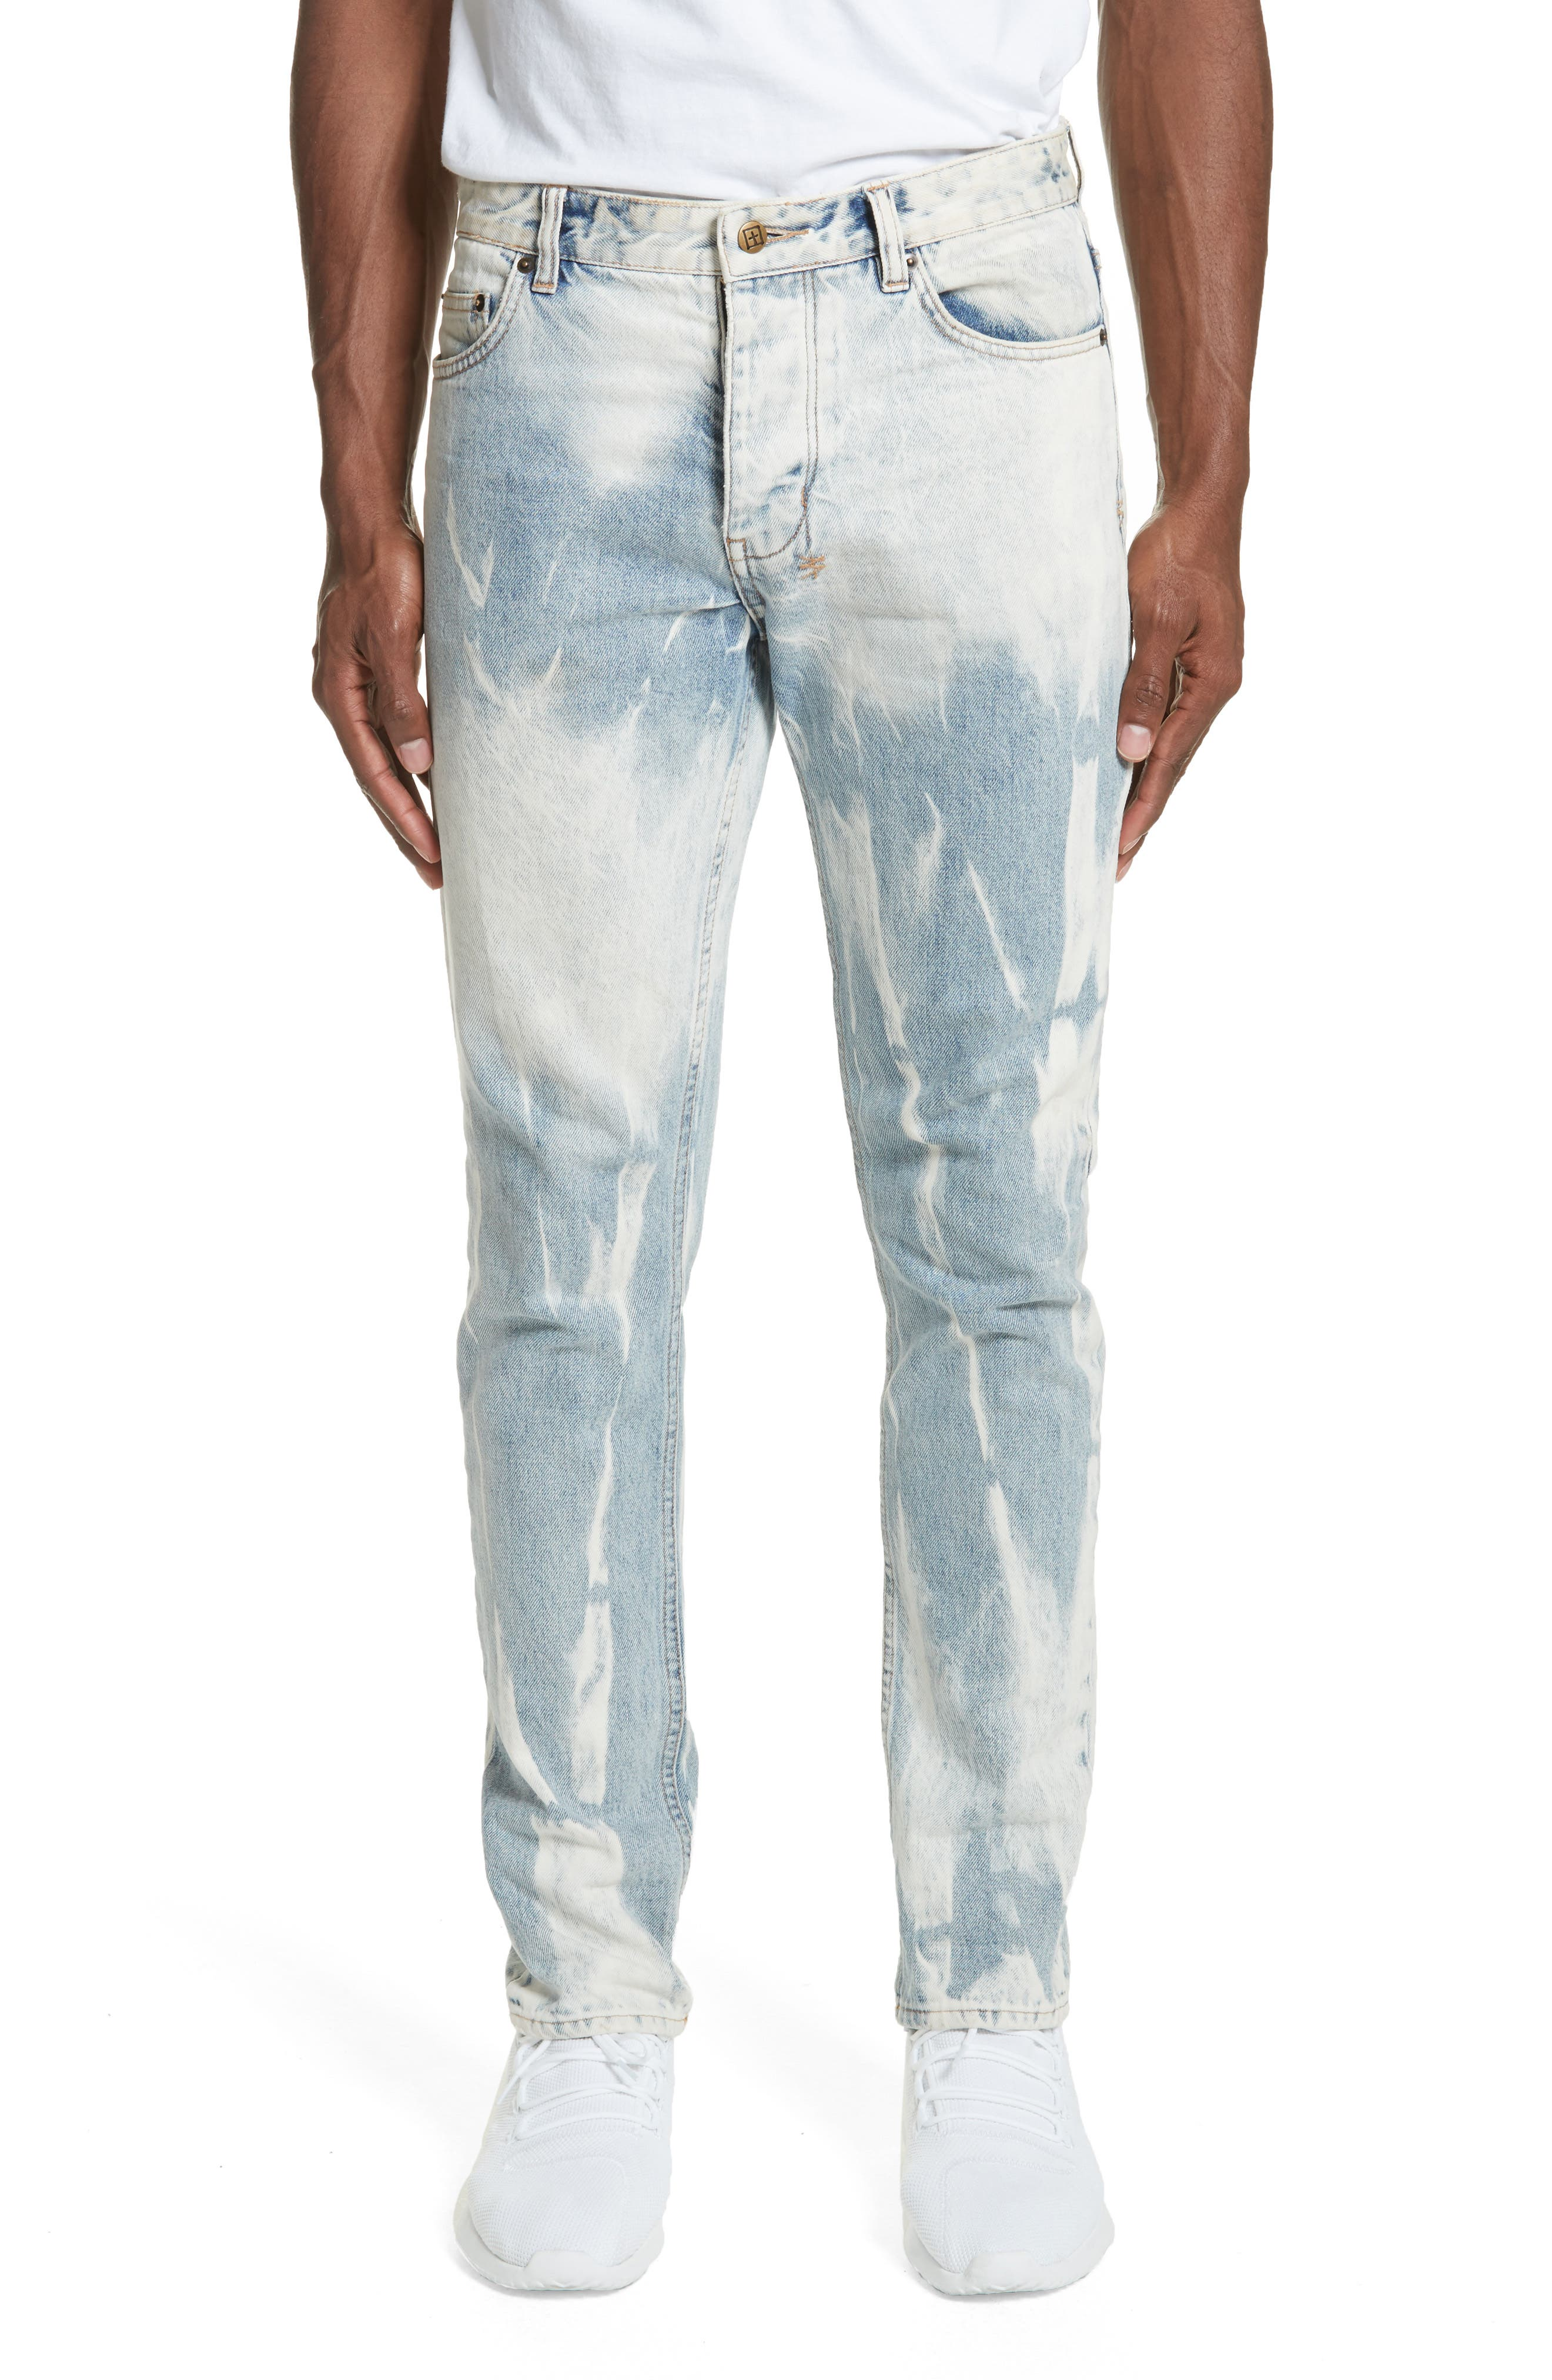 Chitch Mile Skinny Jeans,                         Main,                         color, 460